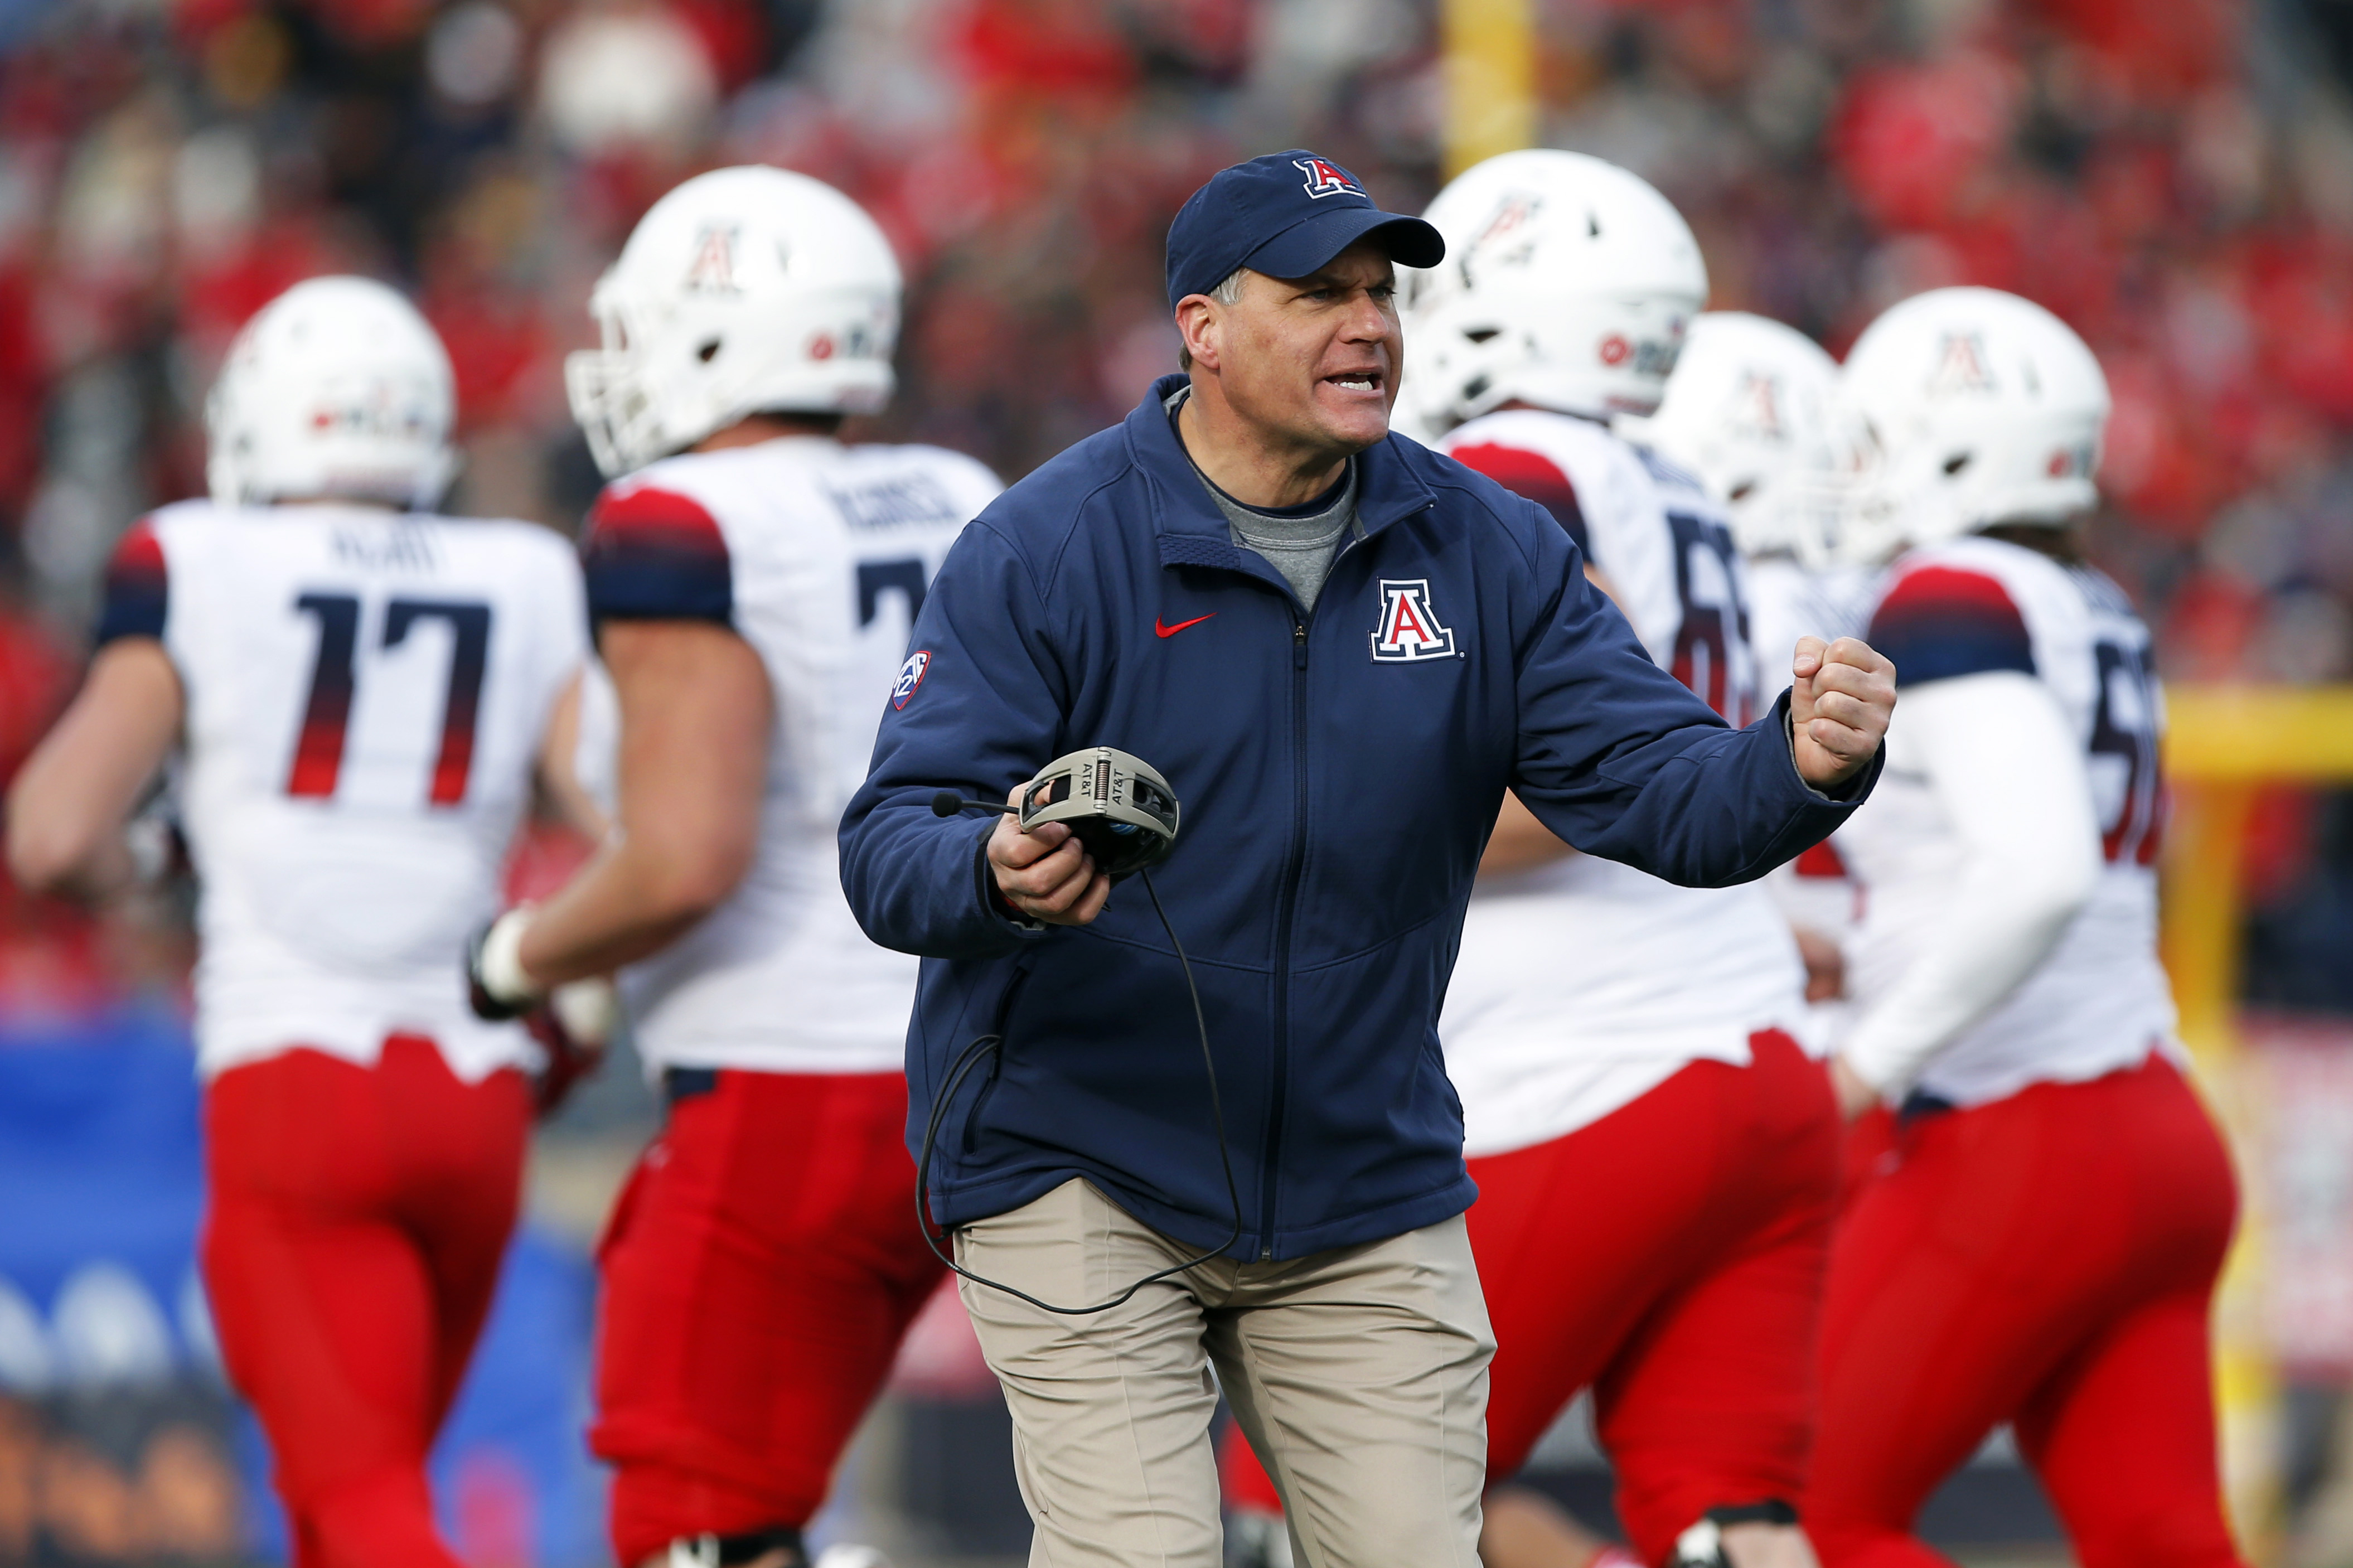 FILE - In this Dec. 19, 2015, file photo, Arizona head coach Rich Rodriguez encourages his players during a timeout in the second half of the New Mexico Bowl NCAA college football game against New Mexico in Albuquerque, N.M. Rodriguez hears it all the tim